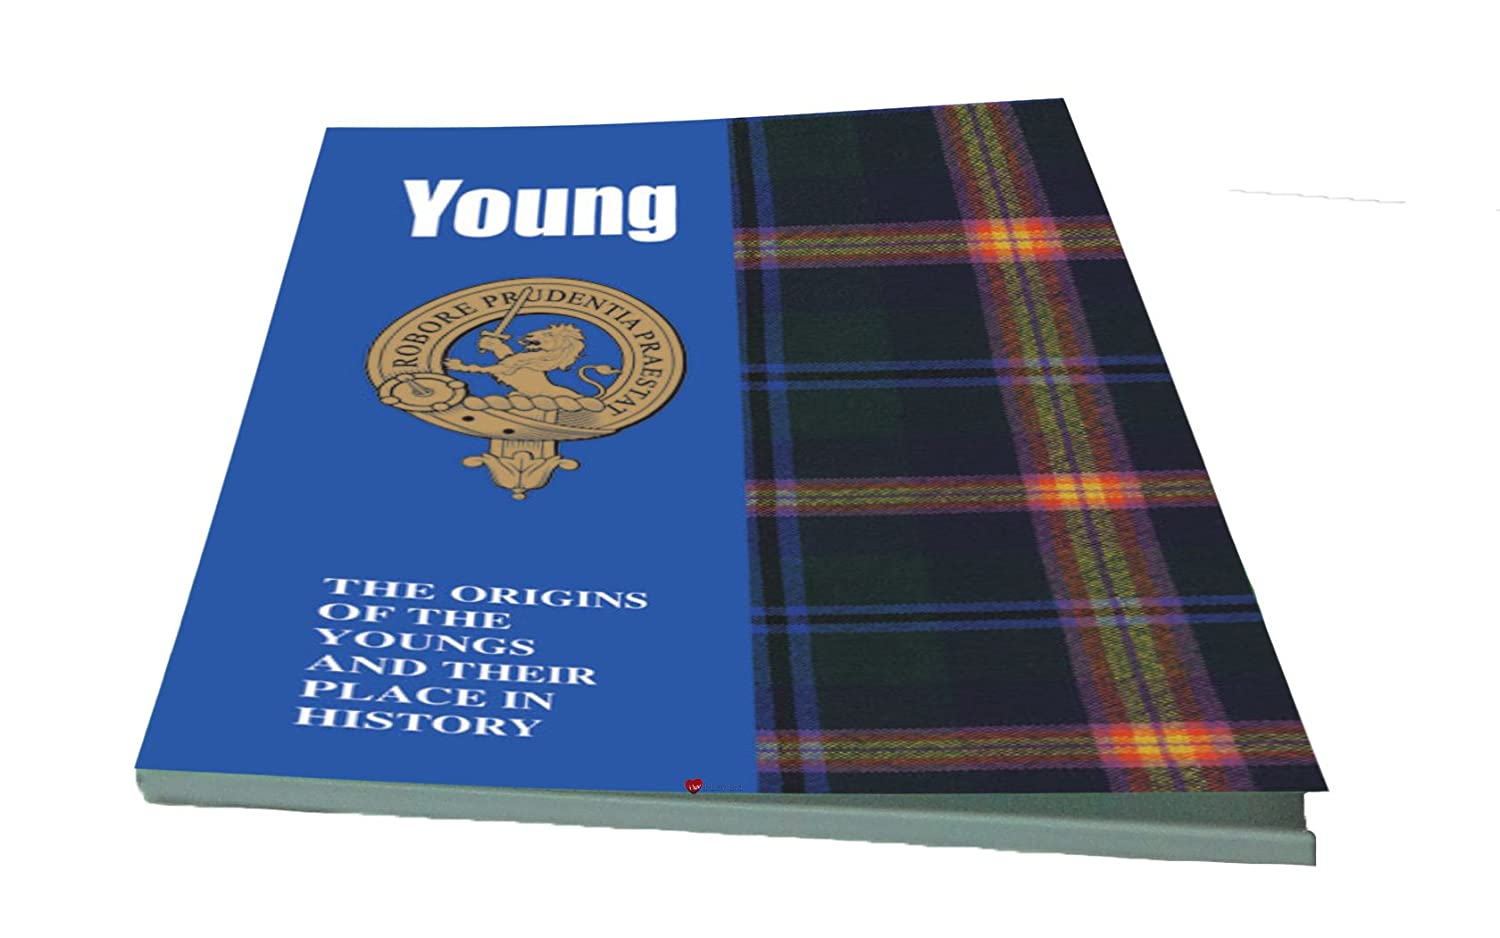 Young Scottish Clan History Booklet I Luv LTD